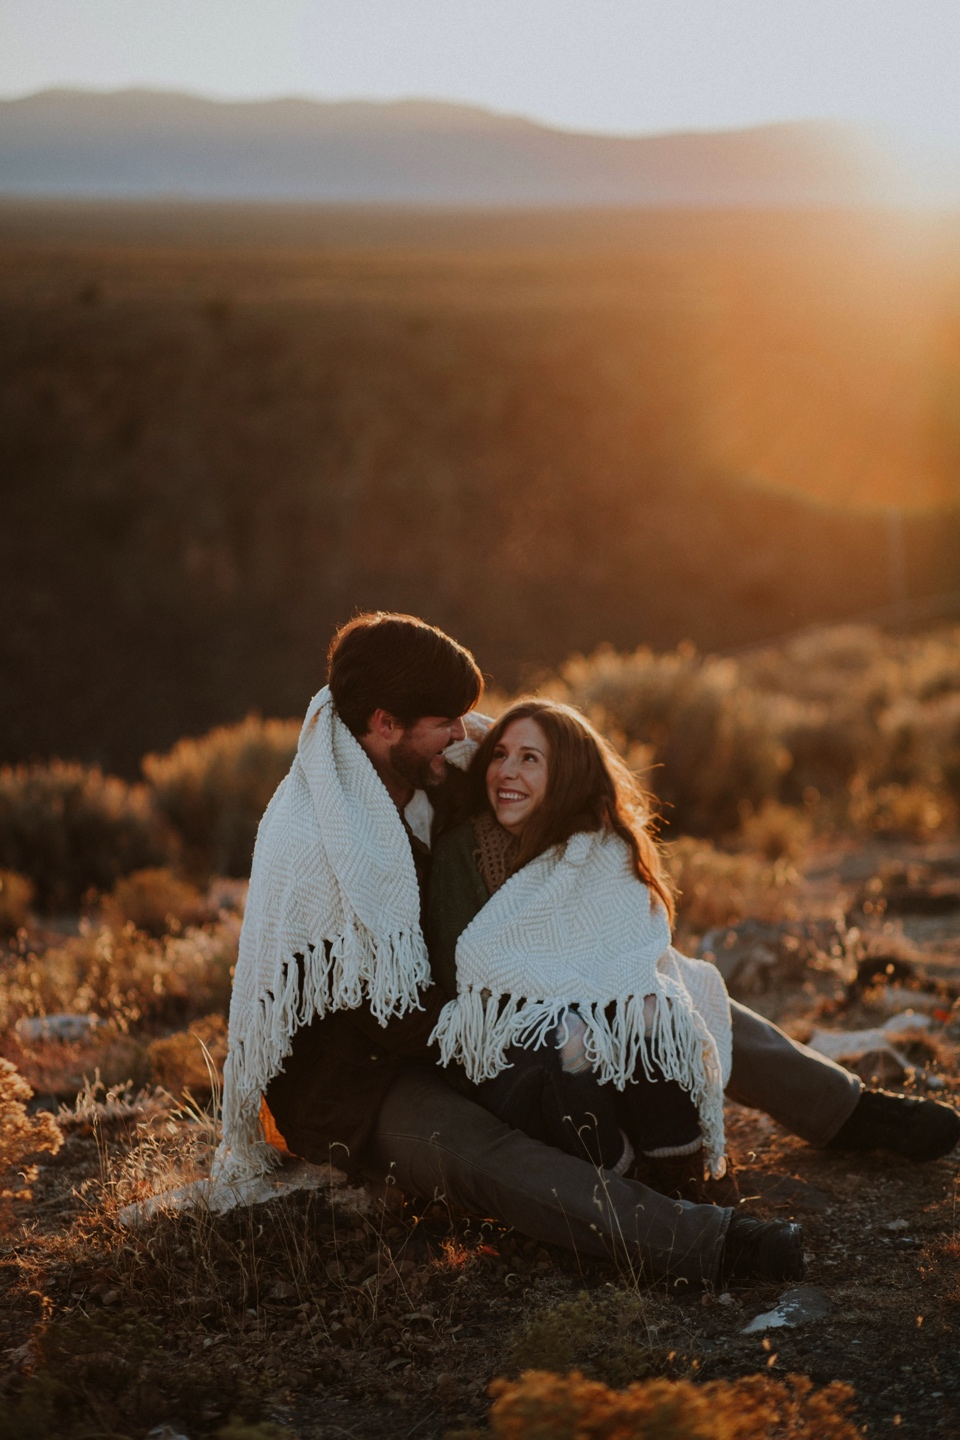 Natalie and Boots traveled all the way from the sunshine state for their beautiful Sunrise Engagement Photos at the Rio Grande Gorge Bridge in Taos, New Mexico. It was a chilly morning in Taos and we were all pretty frozen! It was 6 degree weather when we met at the Rio Grande Gorge Bridge, but there is nothing in the world like seeing the sun rise at the gorge bridge in Taos. The golden light and cotton candy skies from the sunrise were absolutely gorgeous! Natalie and Boots had the perfect winter engagement outfit inspiration for these chilly sunrise engagement photos.